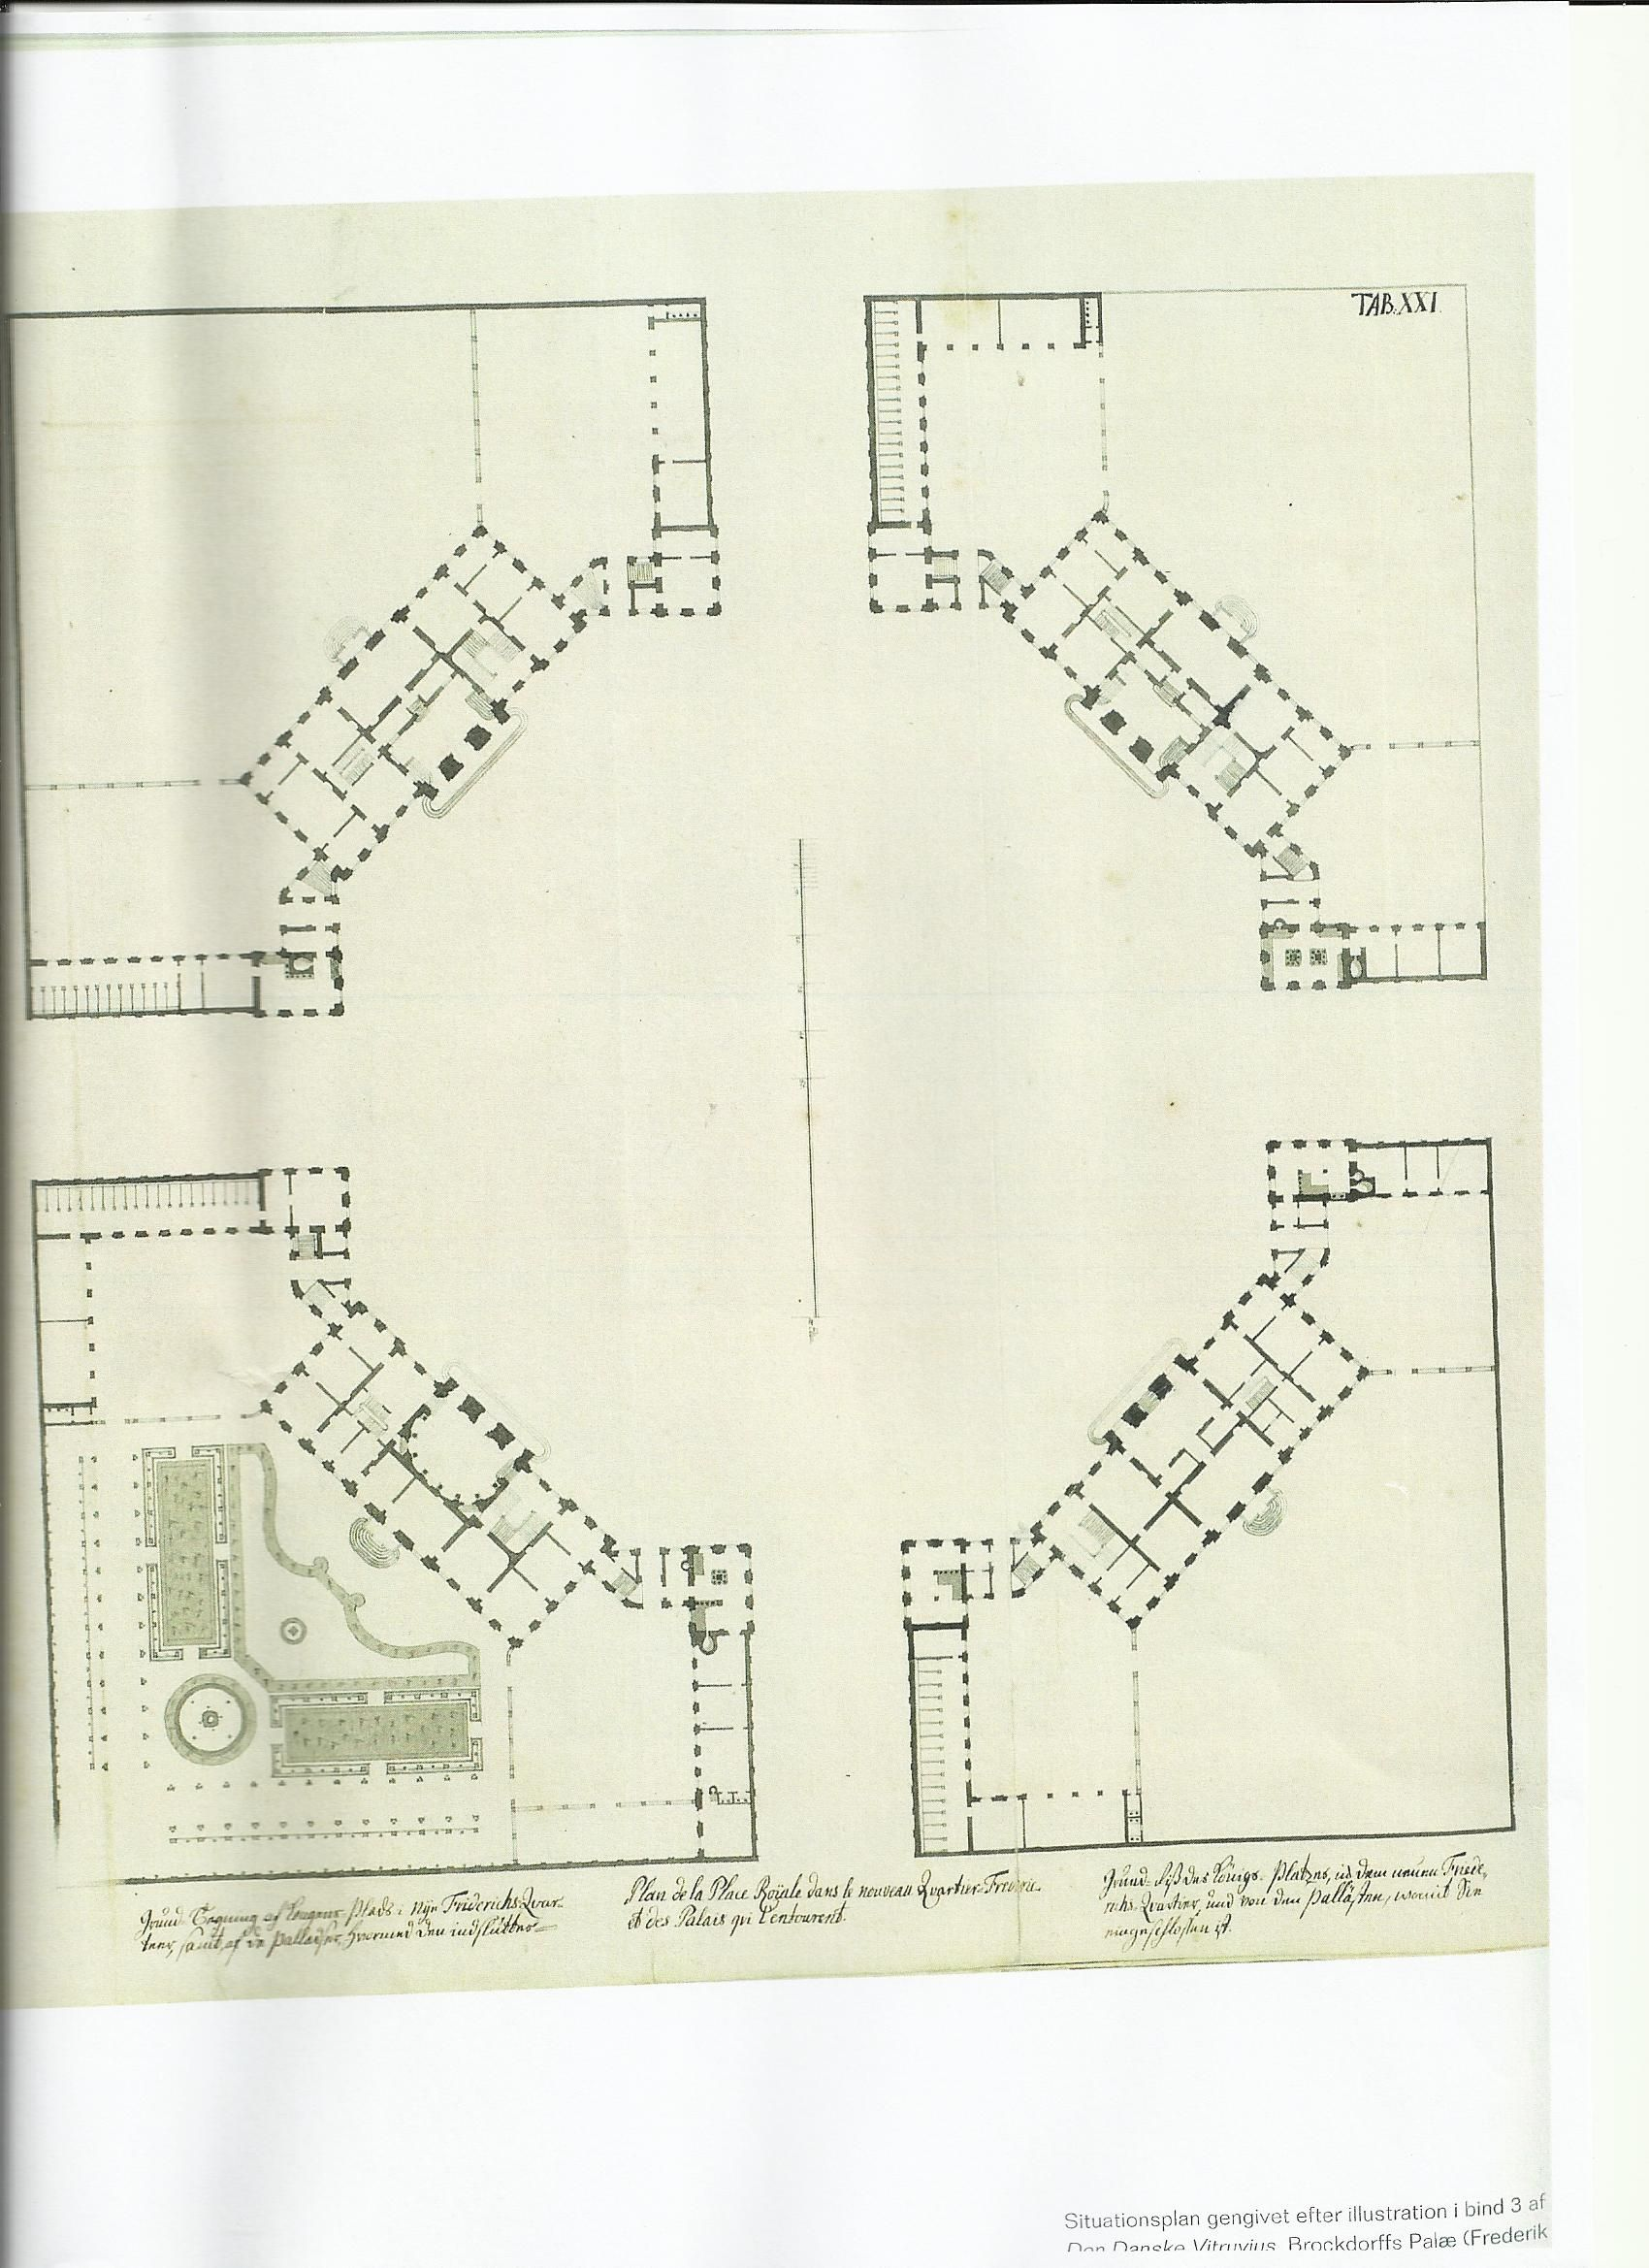 Pin By Monisimo On Floor Plans Castles Palaces How To Plan Baroque Architecture Architectural Floor Plans